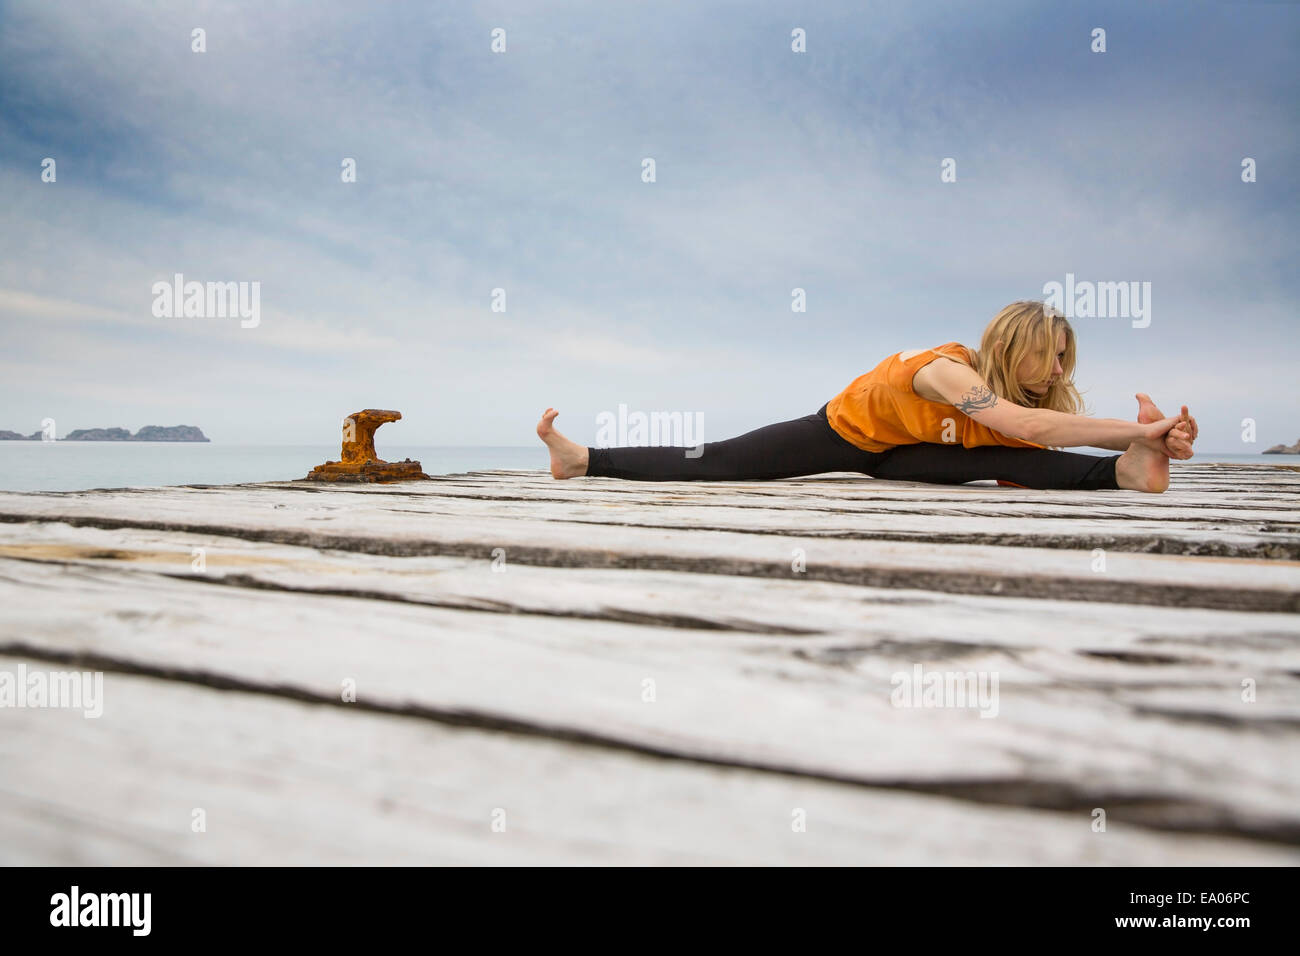 Mid adult woman practicing yoga on pier mer en bois Photo Stock